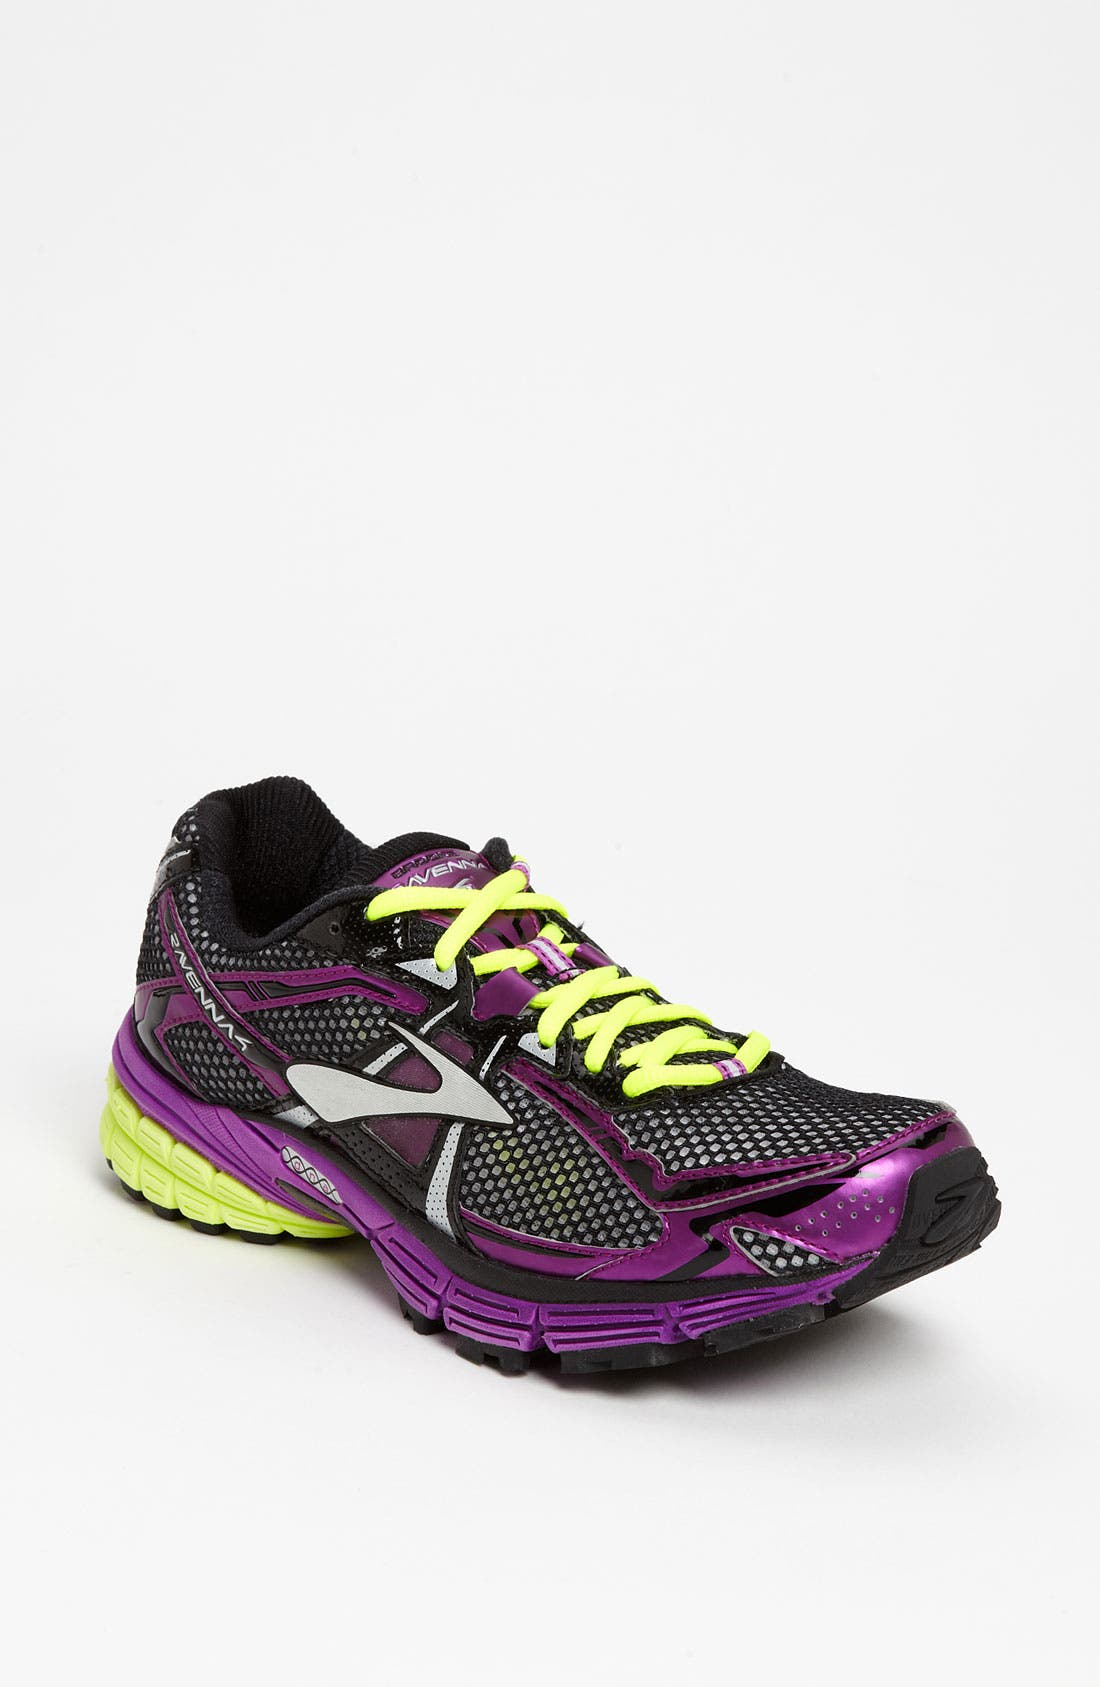 Main Image - Brooks 'Ravenna 4' Running Shoe (Women)(Regular Retail Price: $109.95)